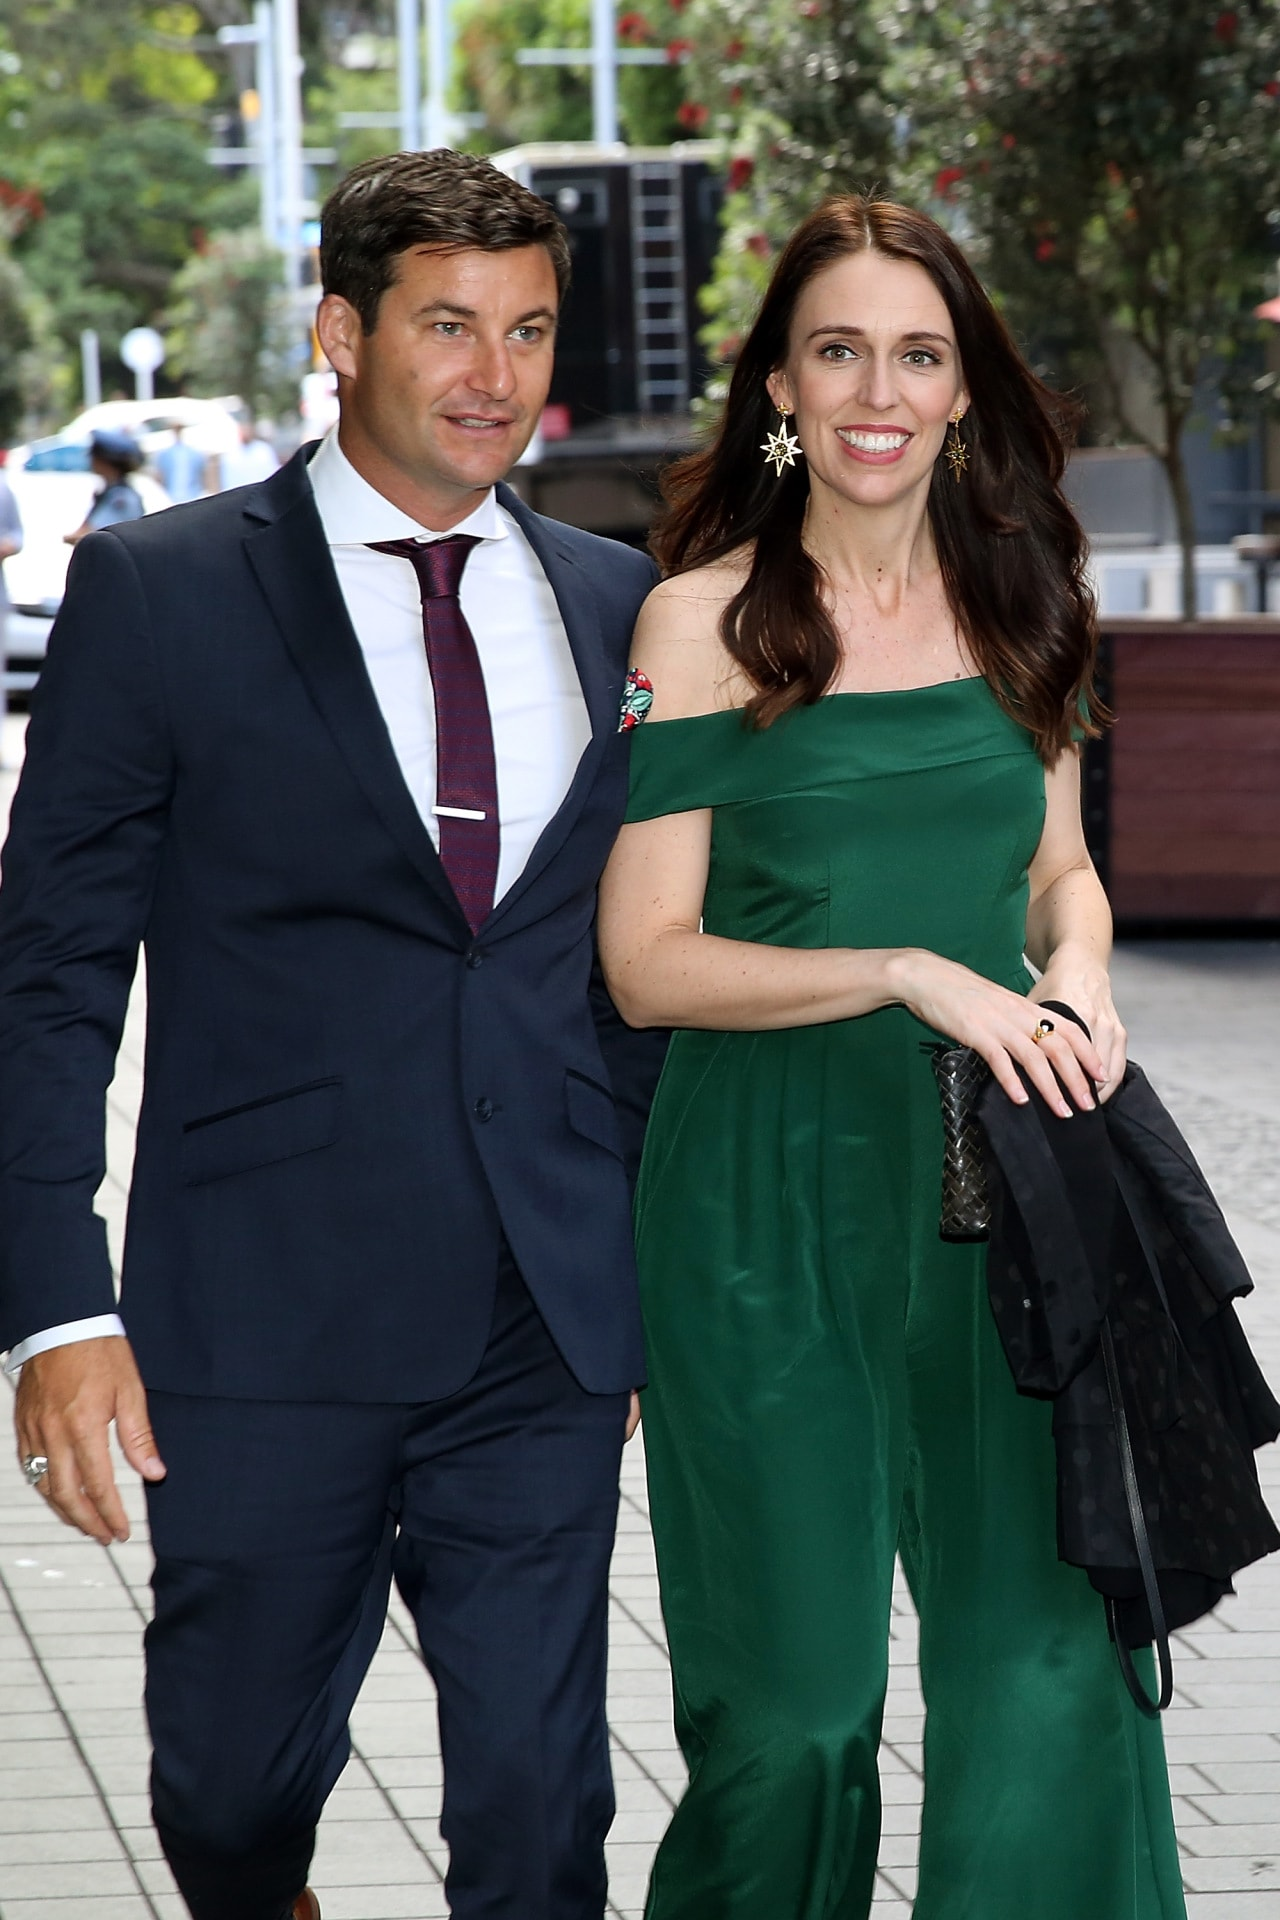 New Zealand Prime Minister Jacinda Ardern is engaged to Clarke Gayford